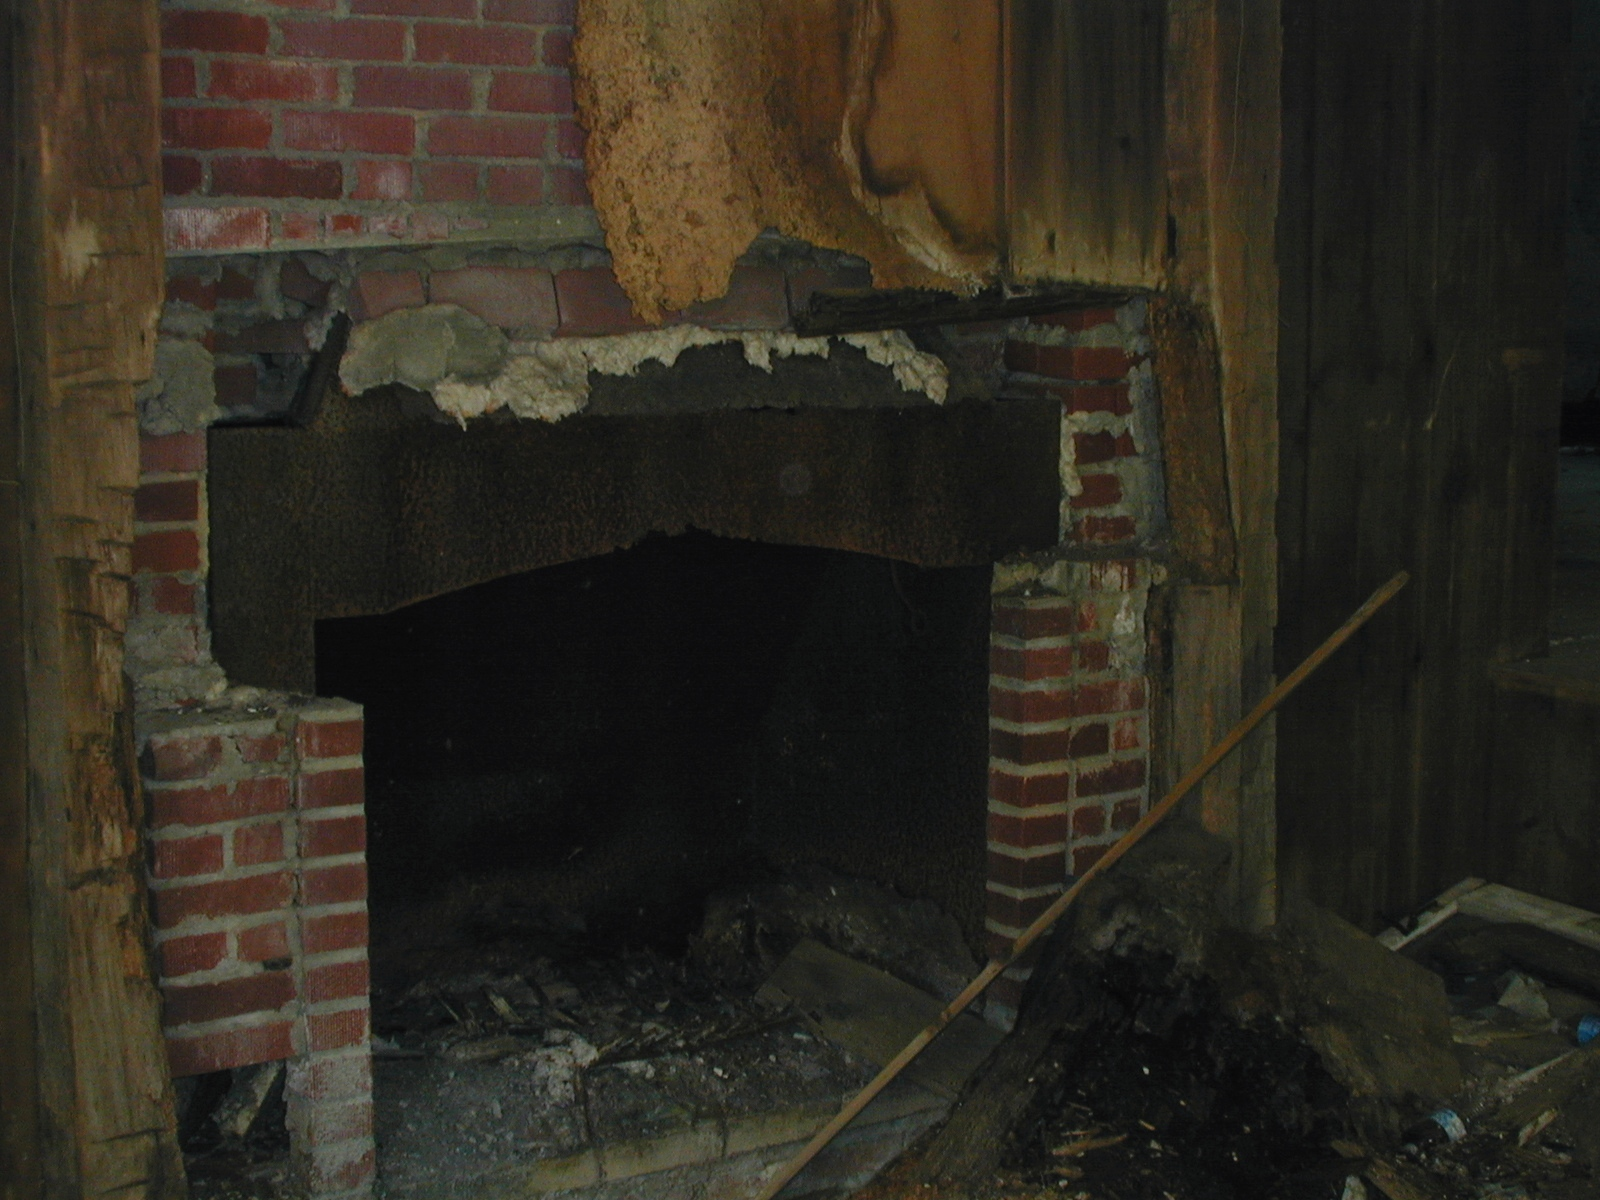 Fireplace in the Depue farmhouse